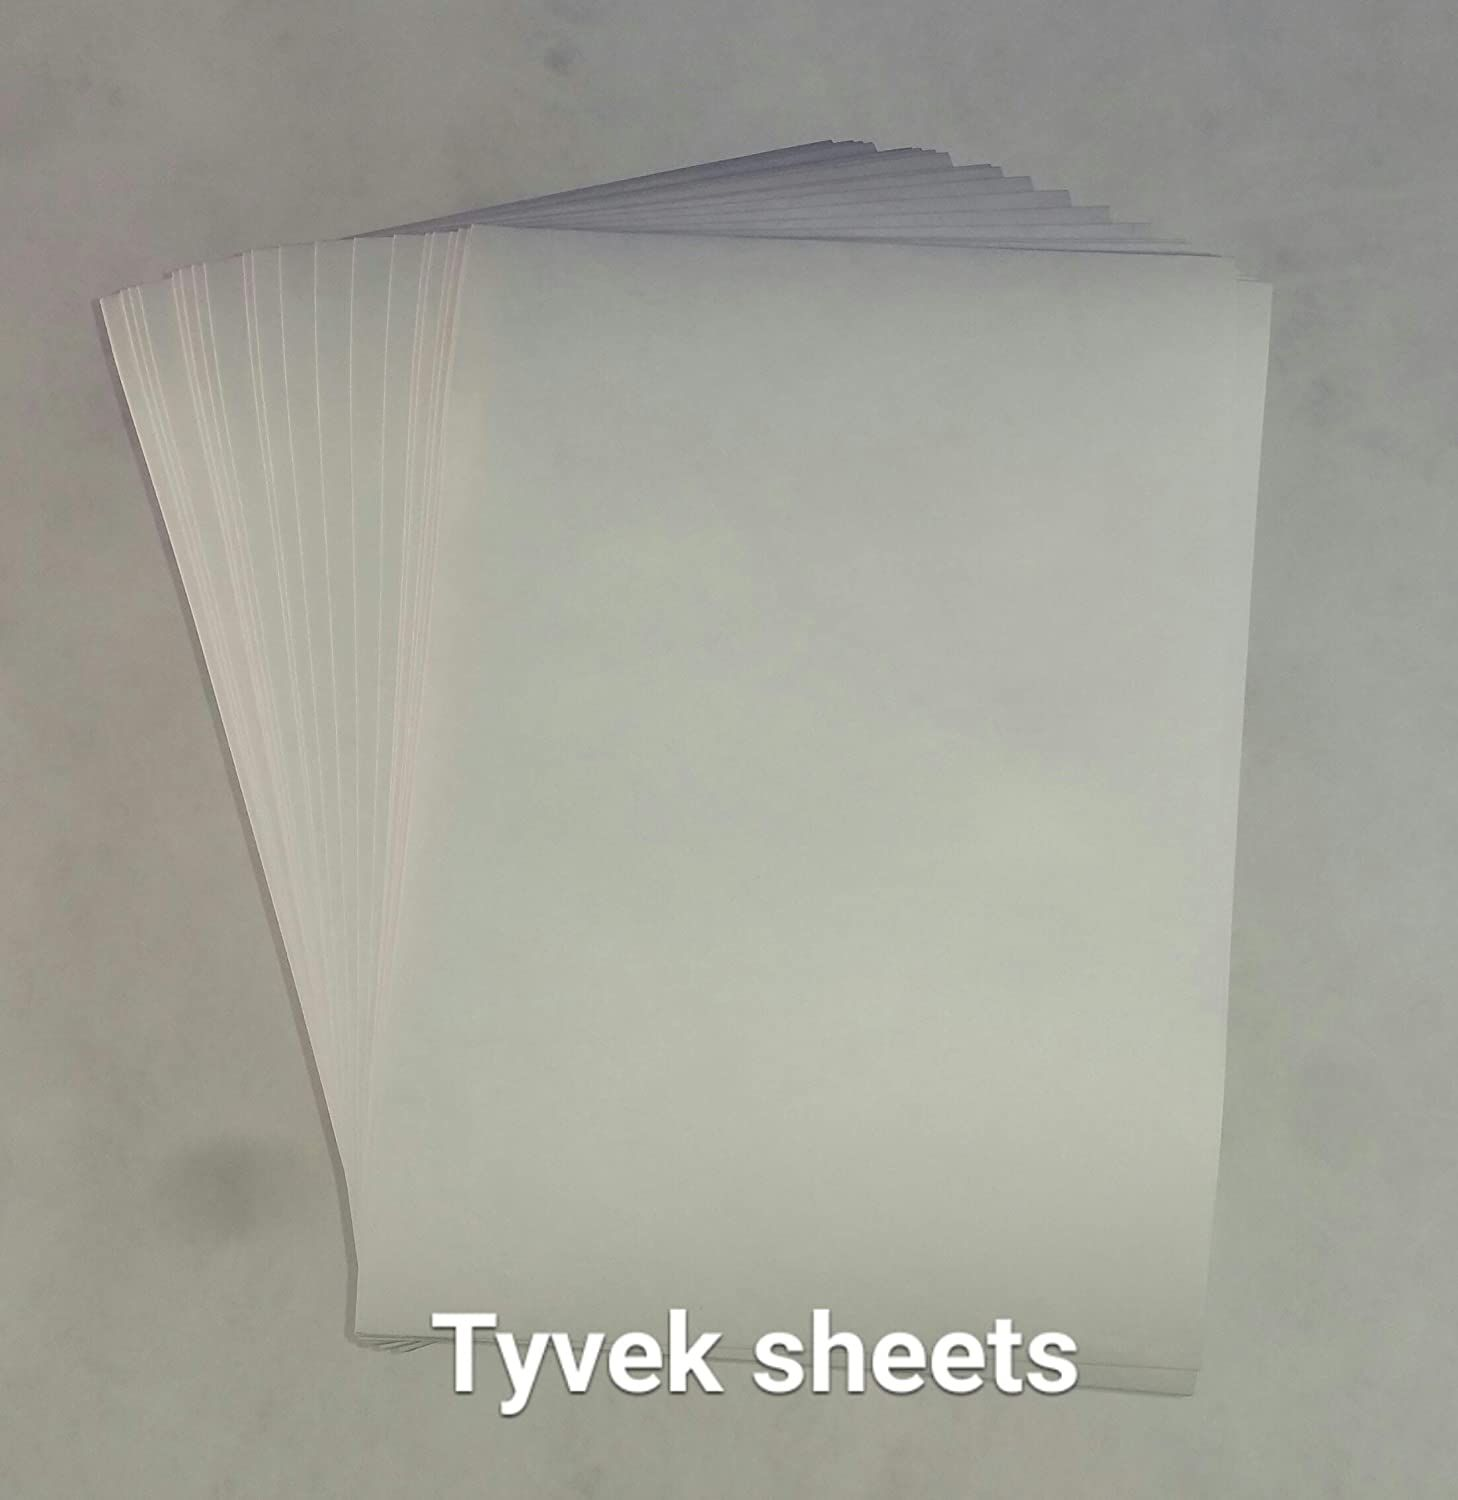 Dupont Tyvek 75gm A4 Pack Of 20 Sheets 8 3 X 11 7 1073d Crafts Paper Dupont Tyvek Tyvek Paper Crafts